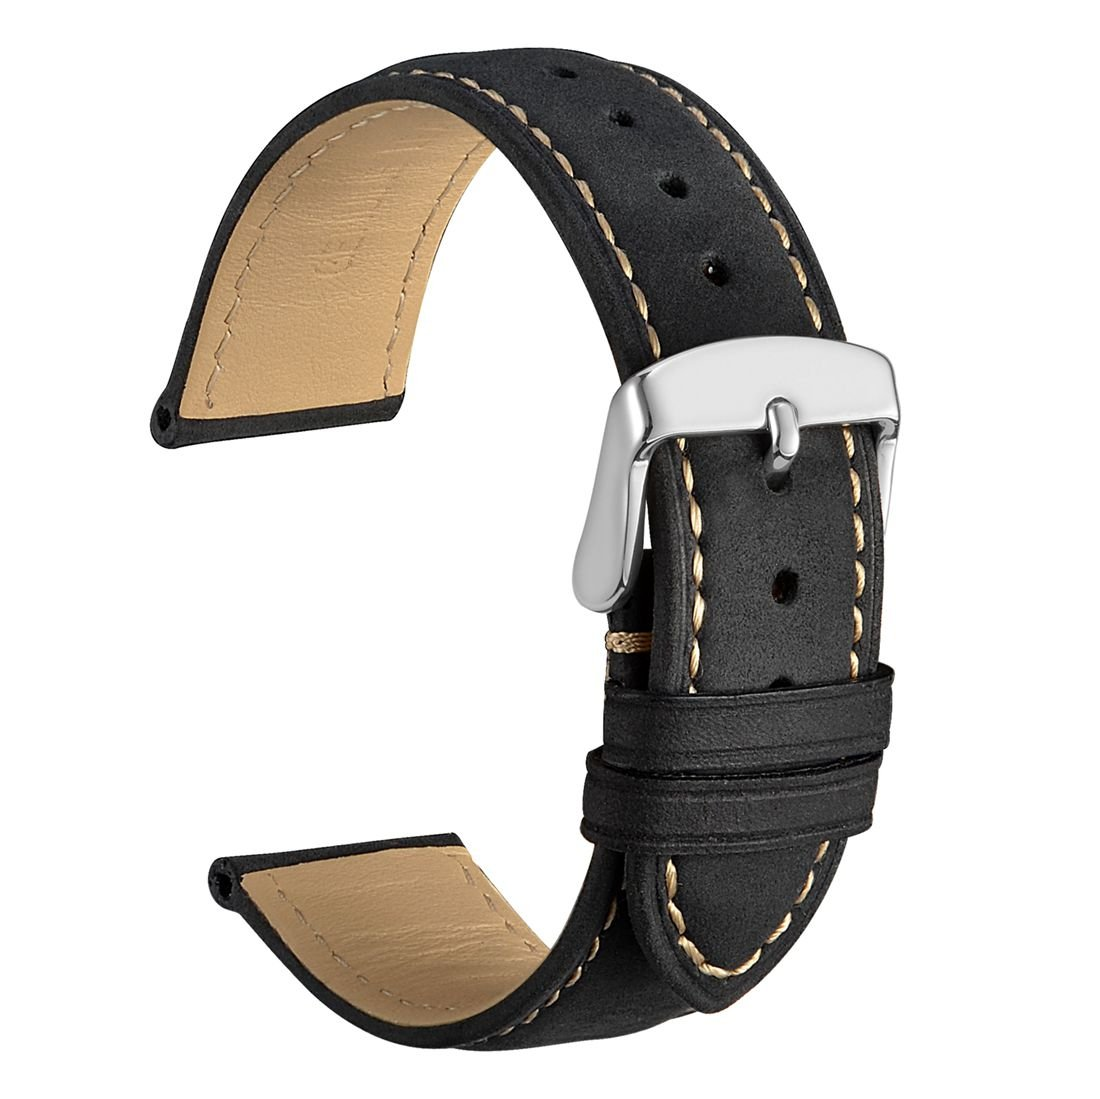 Home Belt Casual Lightweight Faux Leather Watch Band Pin Buckle Solid Soft Wristband Daily Two-pieces Accessories For Apple